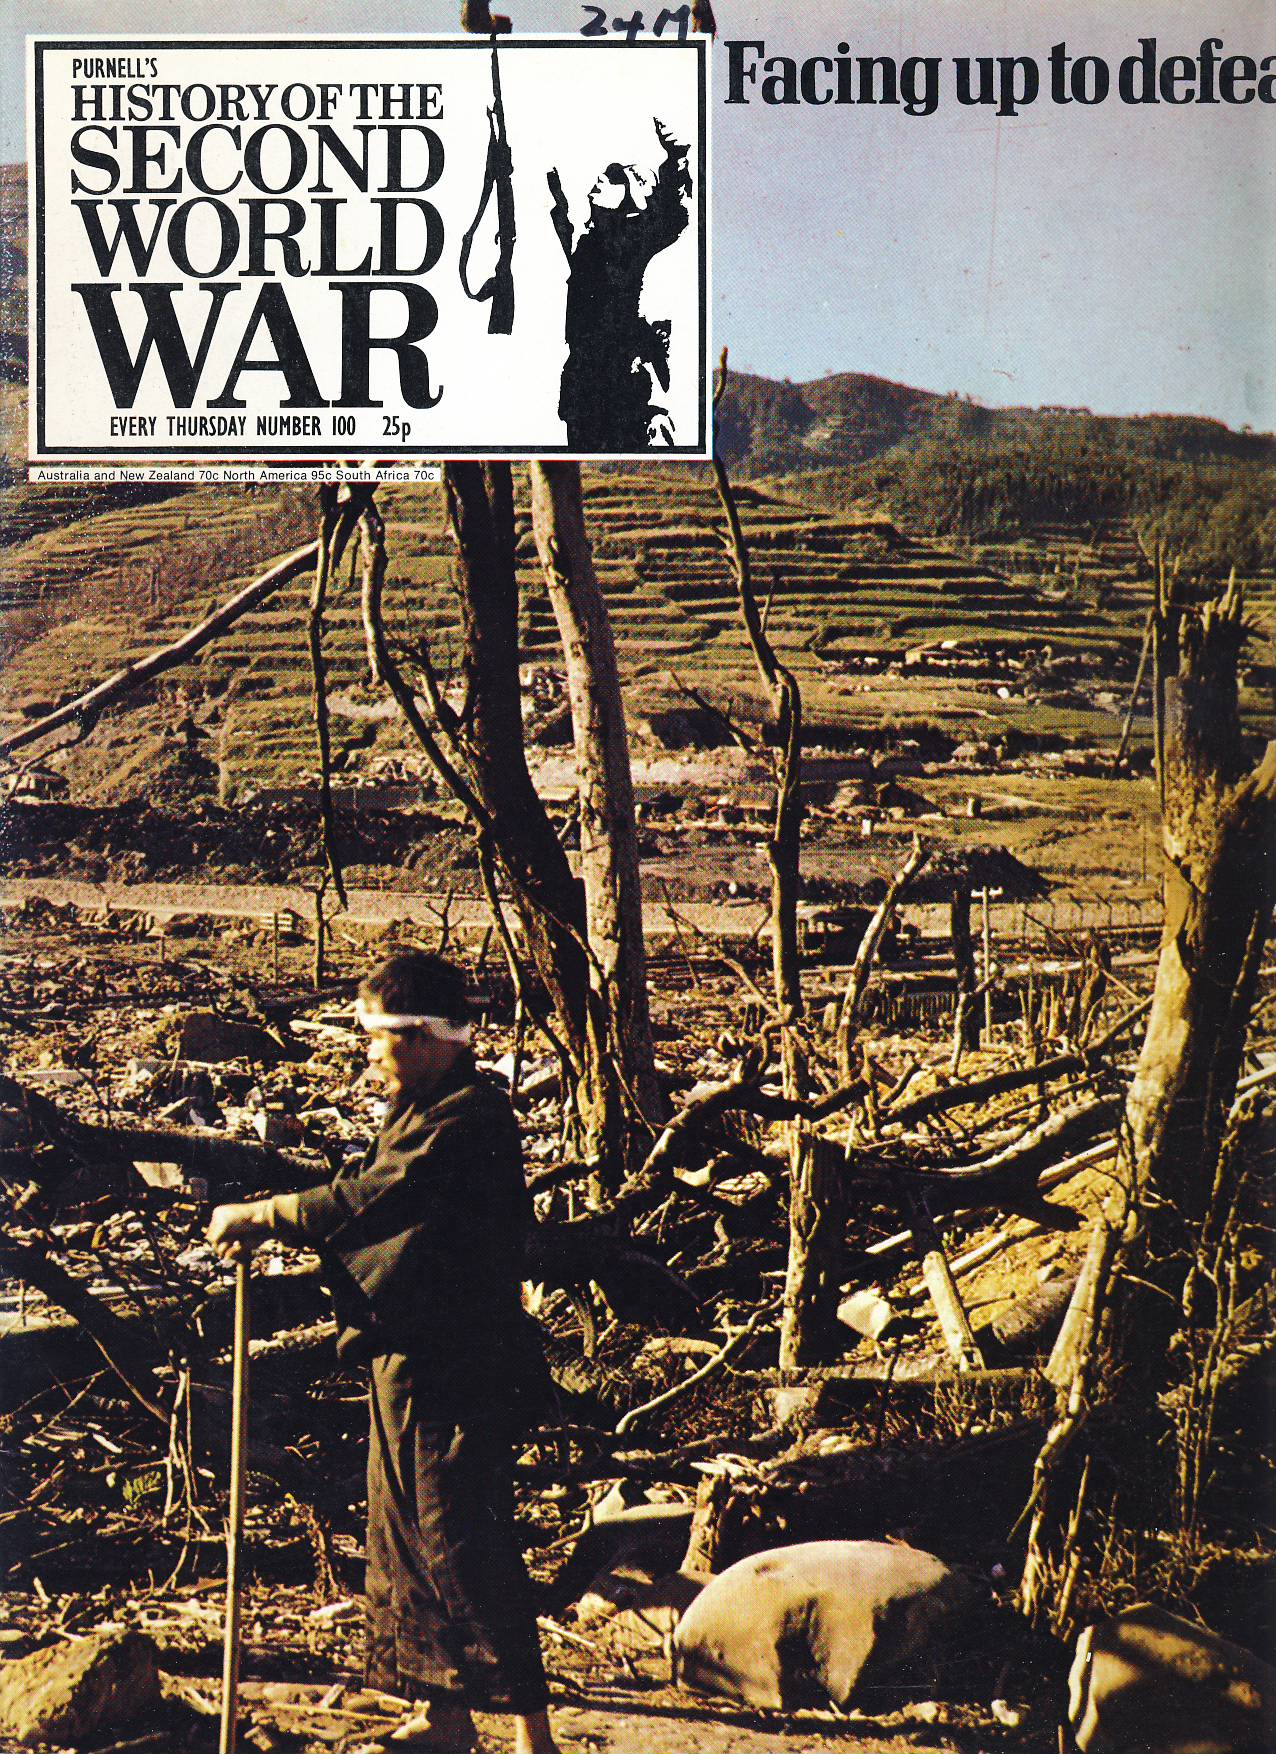 History of the Second World War Magazine #100 FACING UP TO DEFEAT Japan CHINA Burma Malaya INDONESIA A vintage Purnell's weekly magazine in good read condition. Please see larger photo and full description for details.